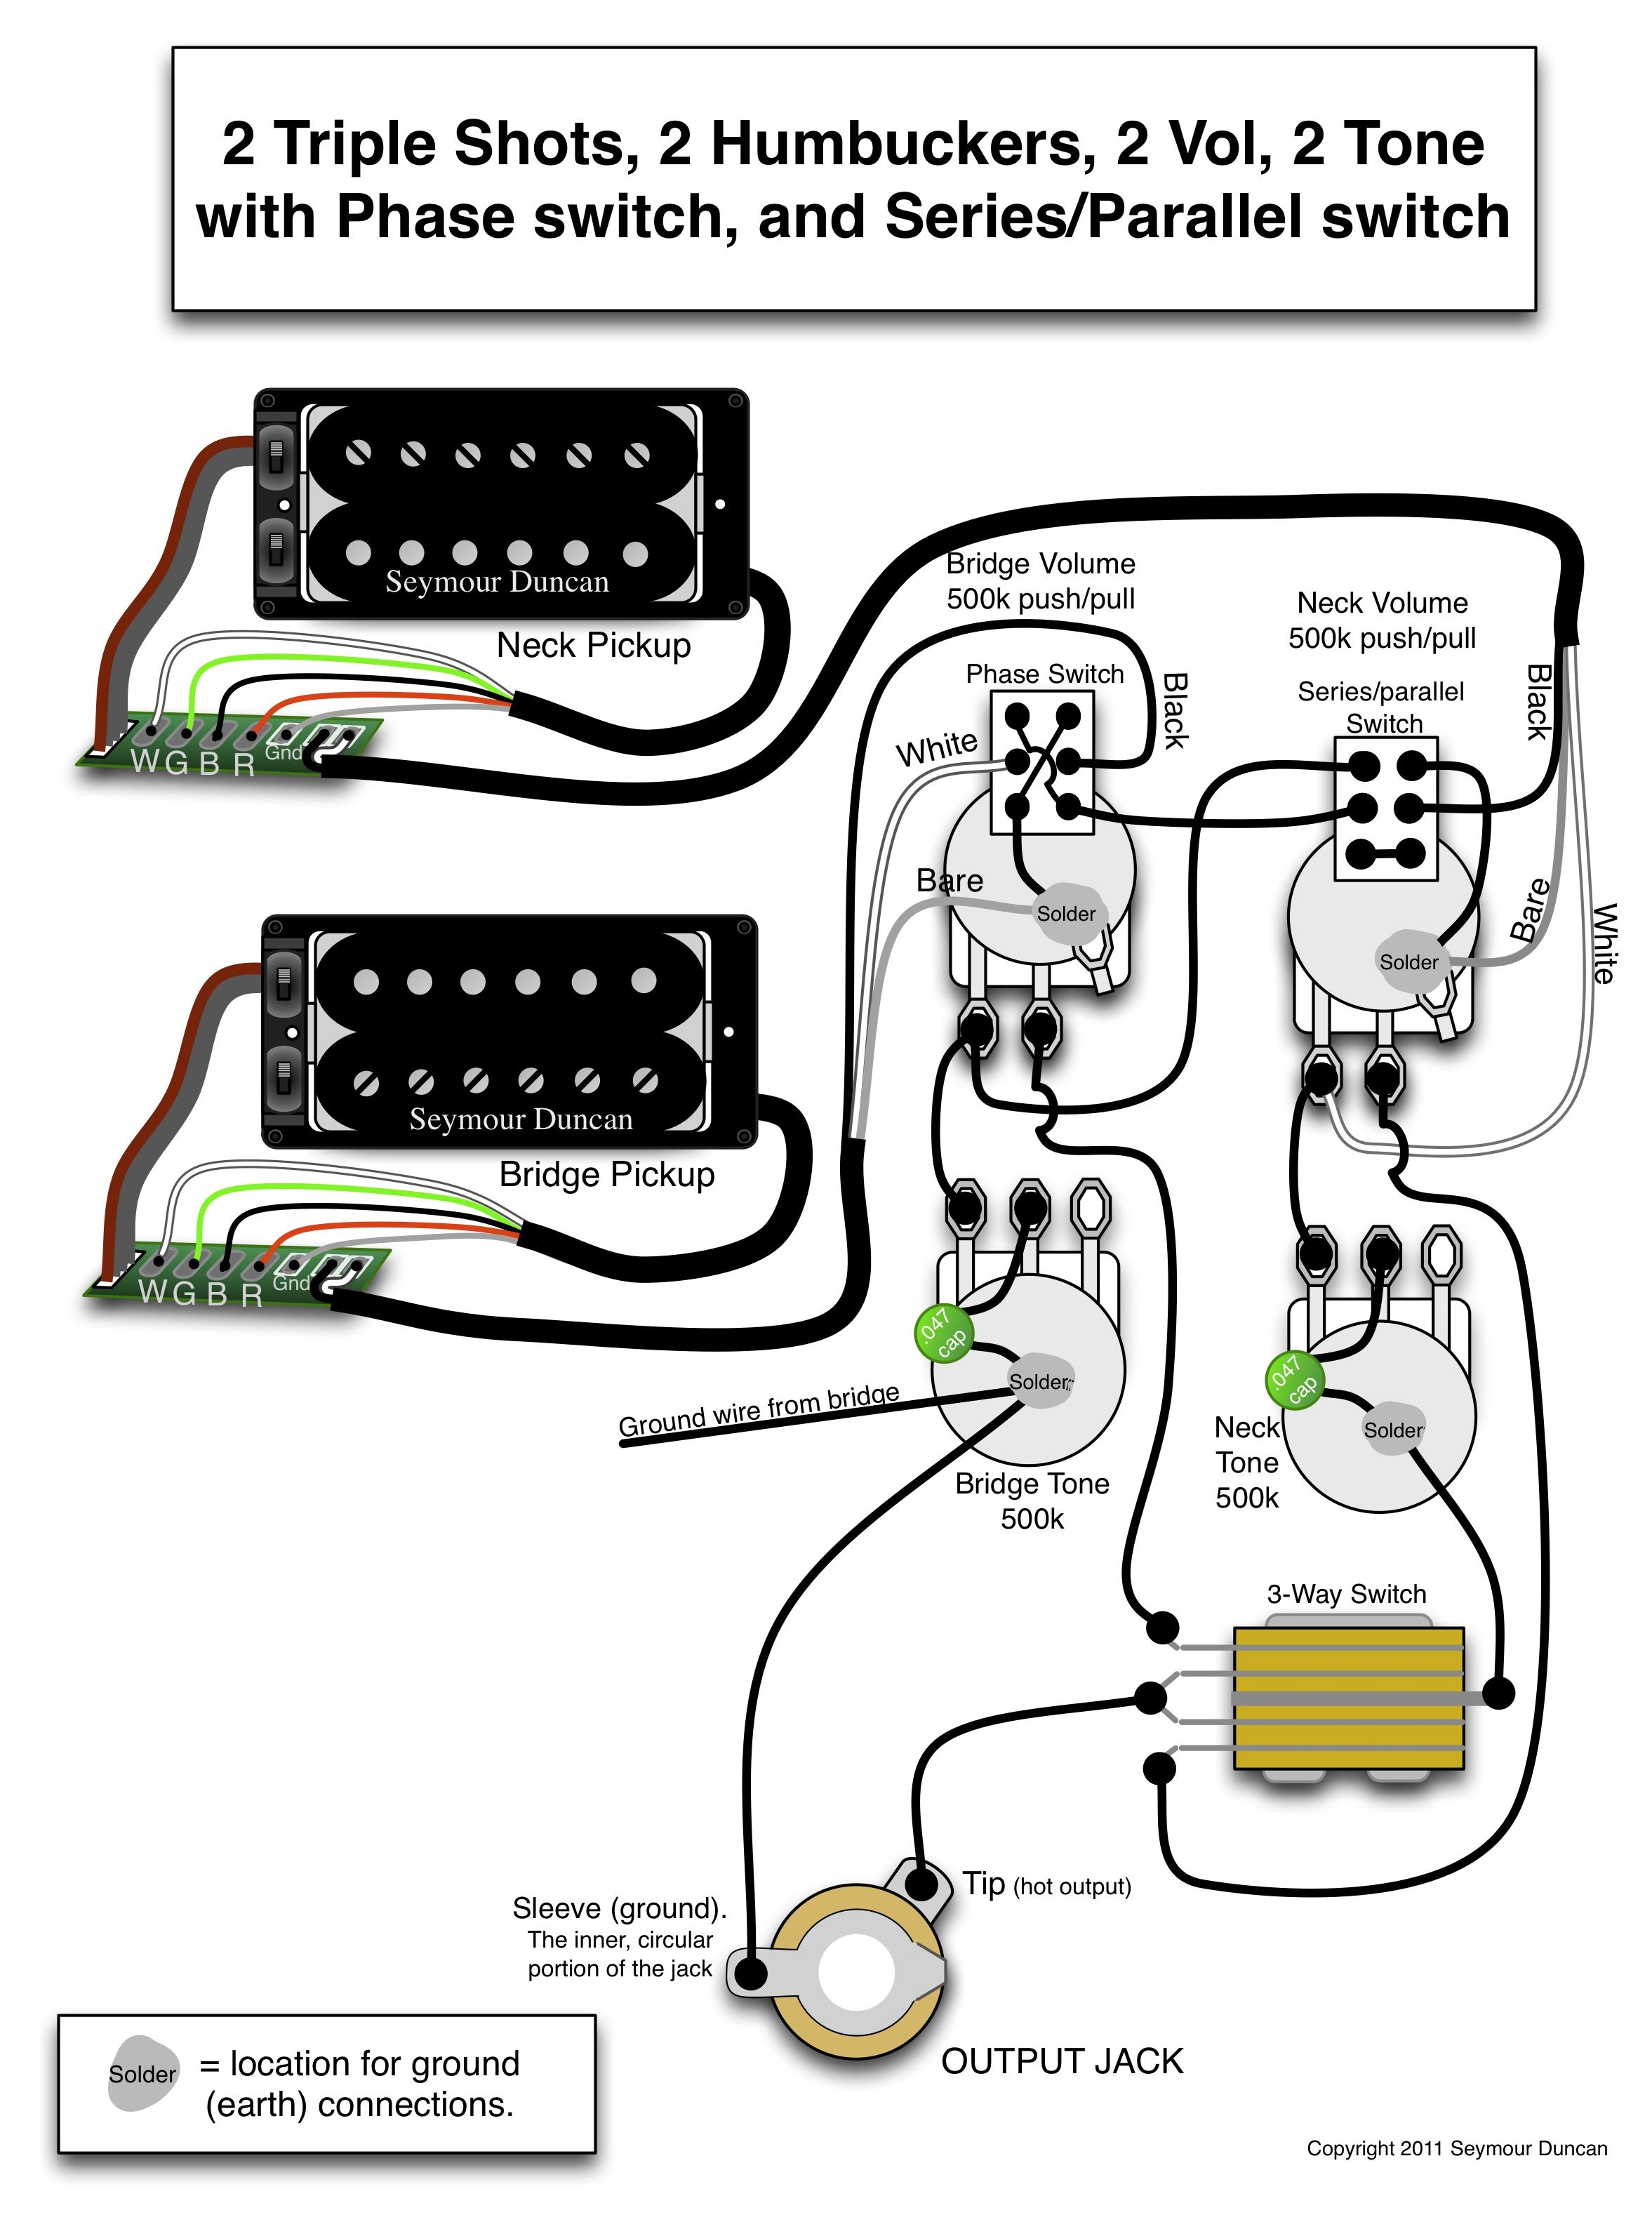 wiring diagram seymour duncan 1989 jeep wrangler 2 triple shots